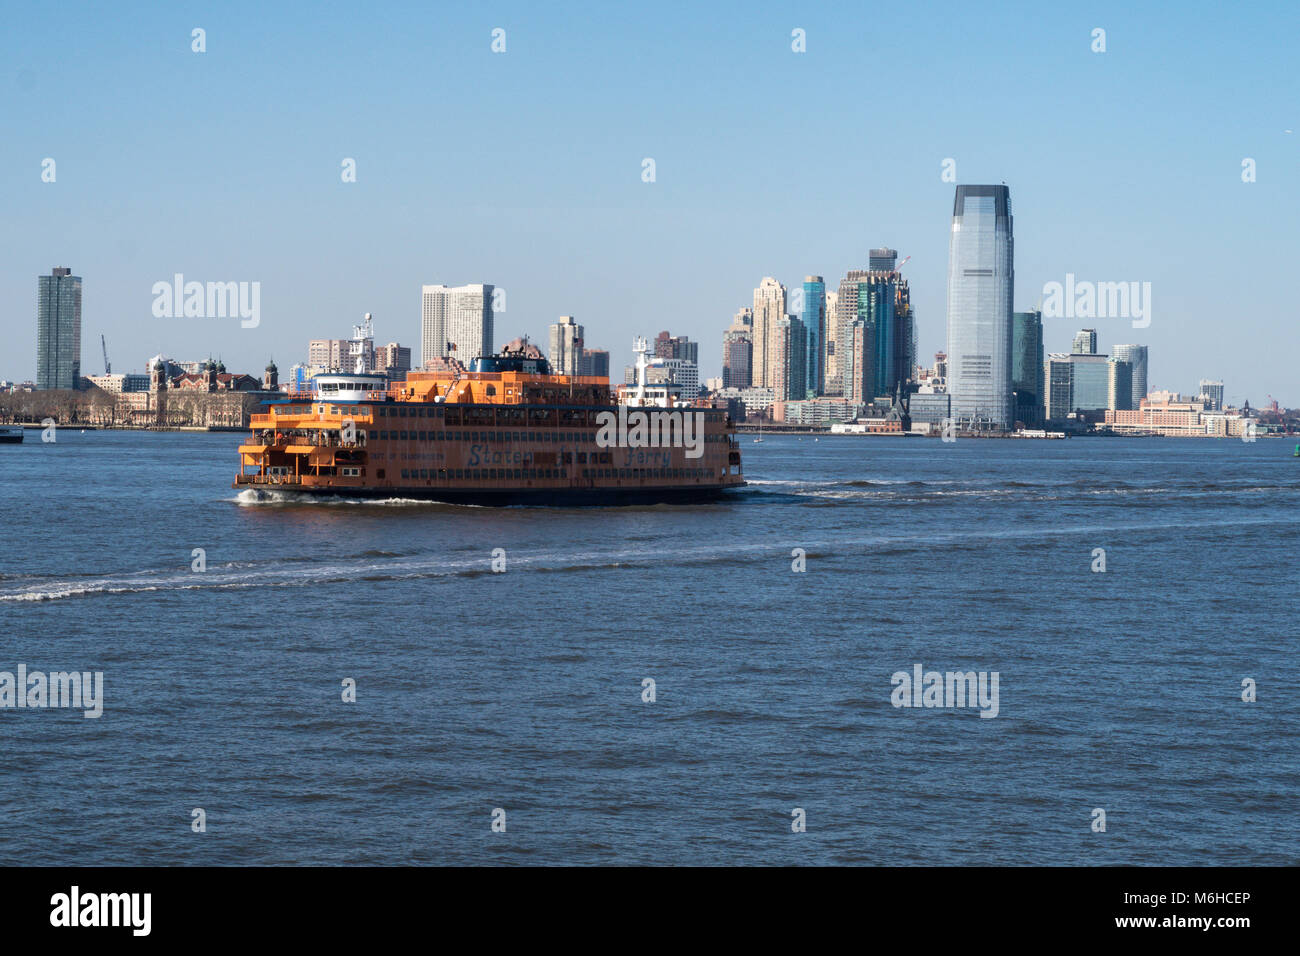 The Skyline of New Jersey and a Staten Island Ferry is seen from New York Harbor, NYC, USA - Stock Image